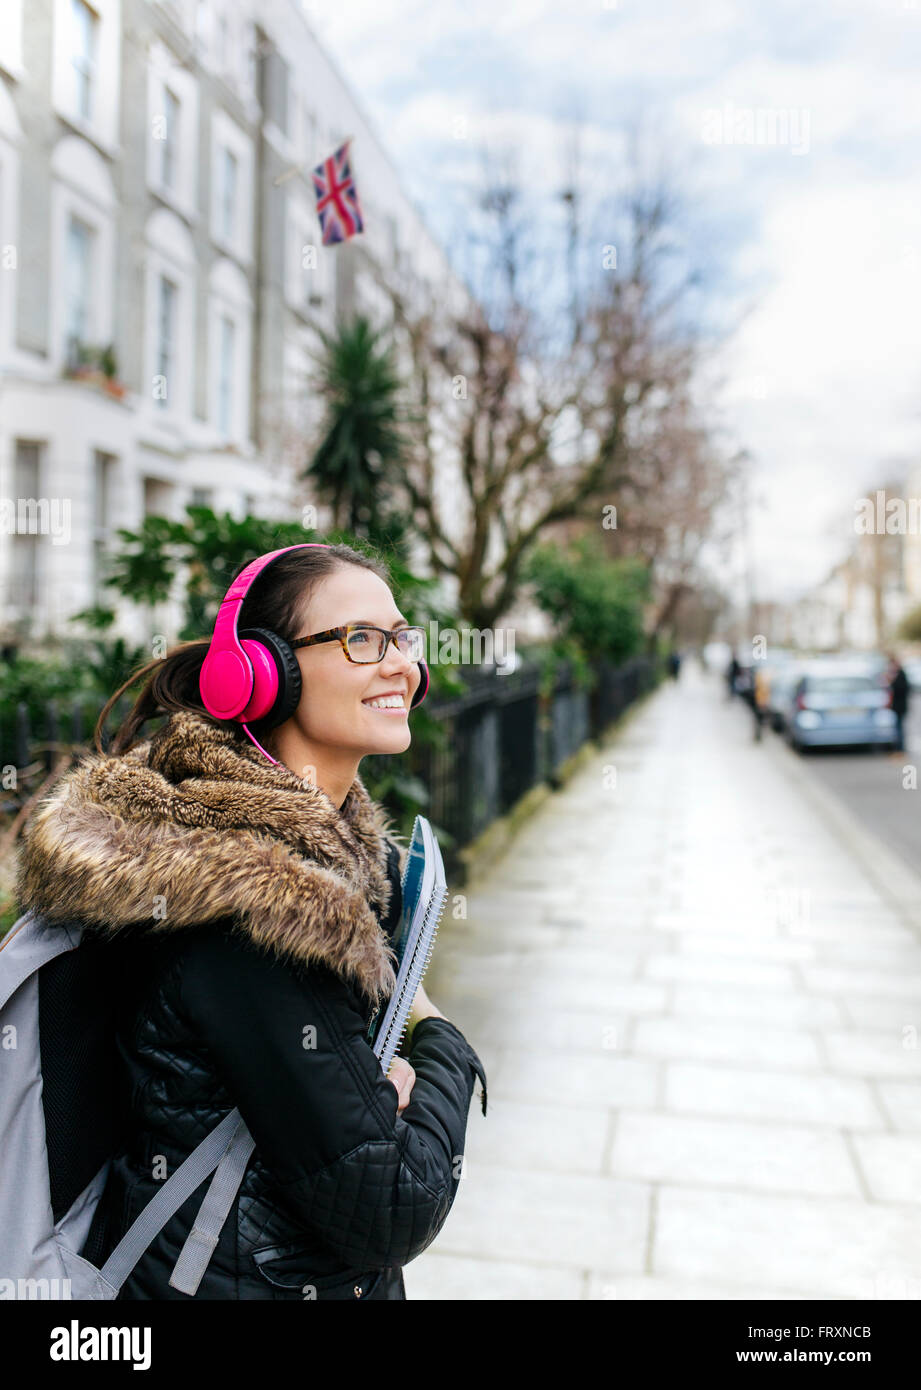 London, student girl with headphone and writing pad - Stock Image